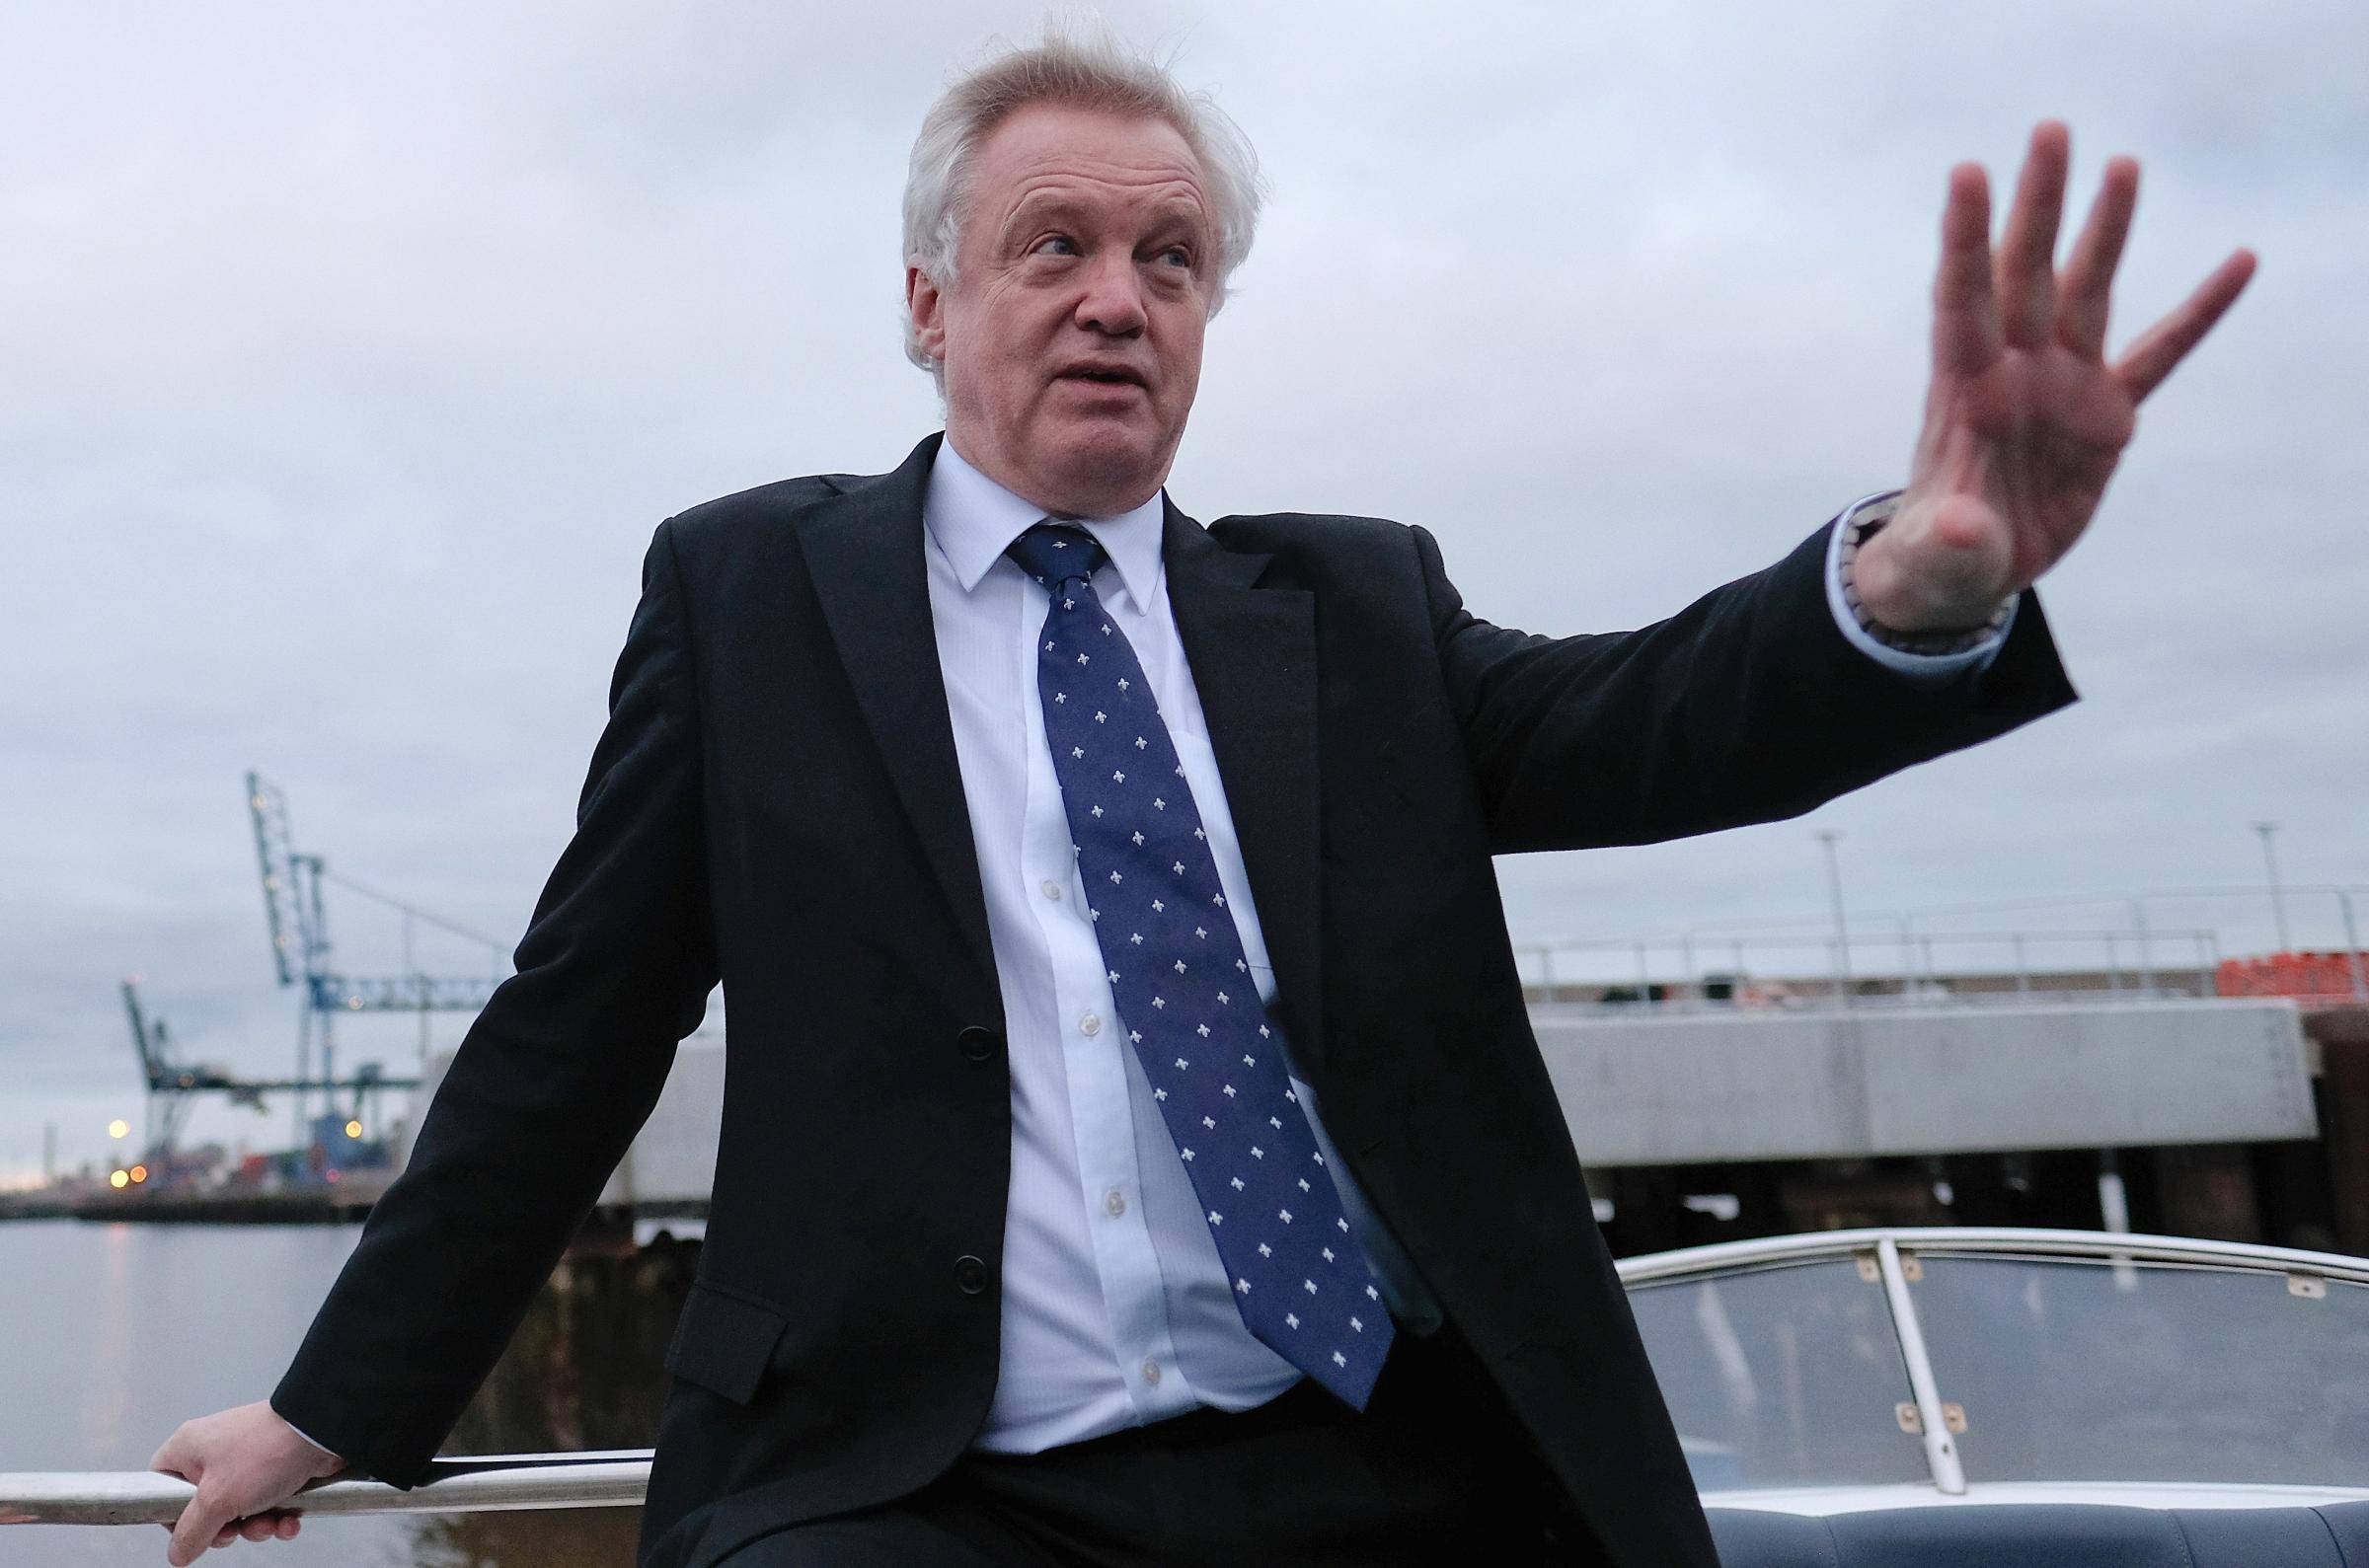 Brexit Secretary David Davis wants the Westminster government to have some influence over any new EU laws implemented during the transition period